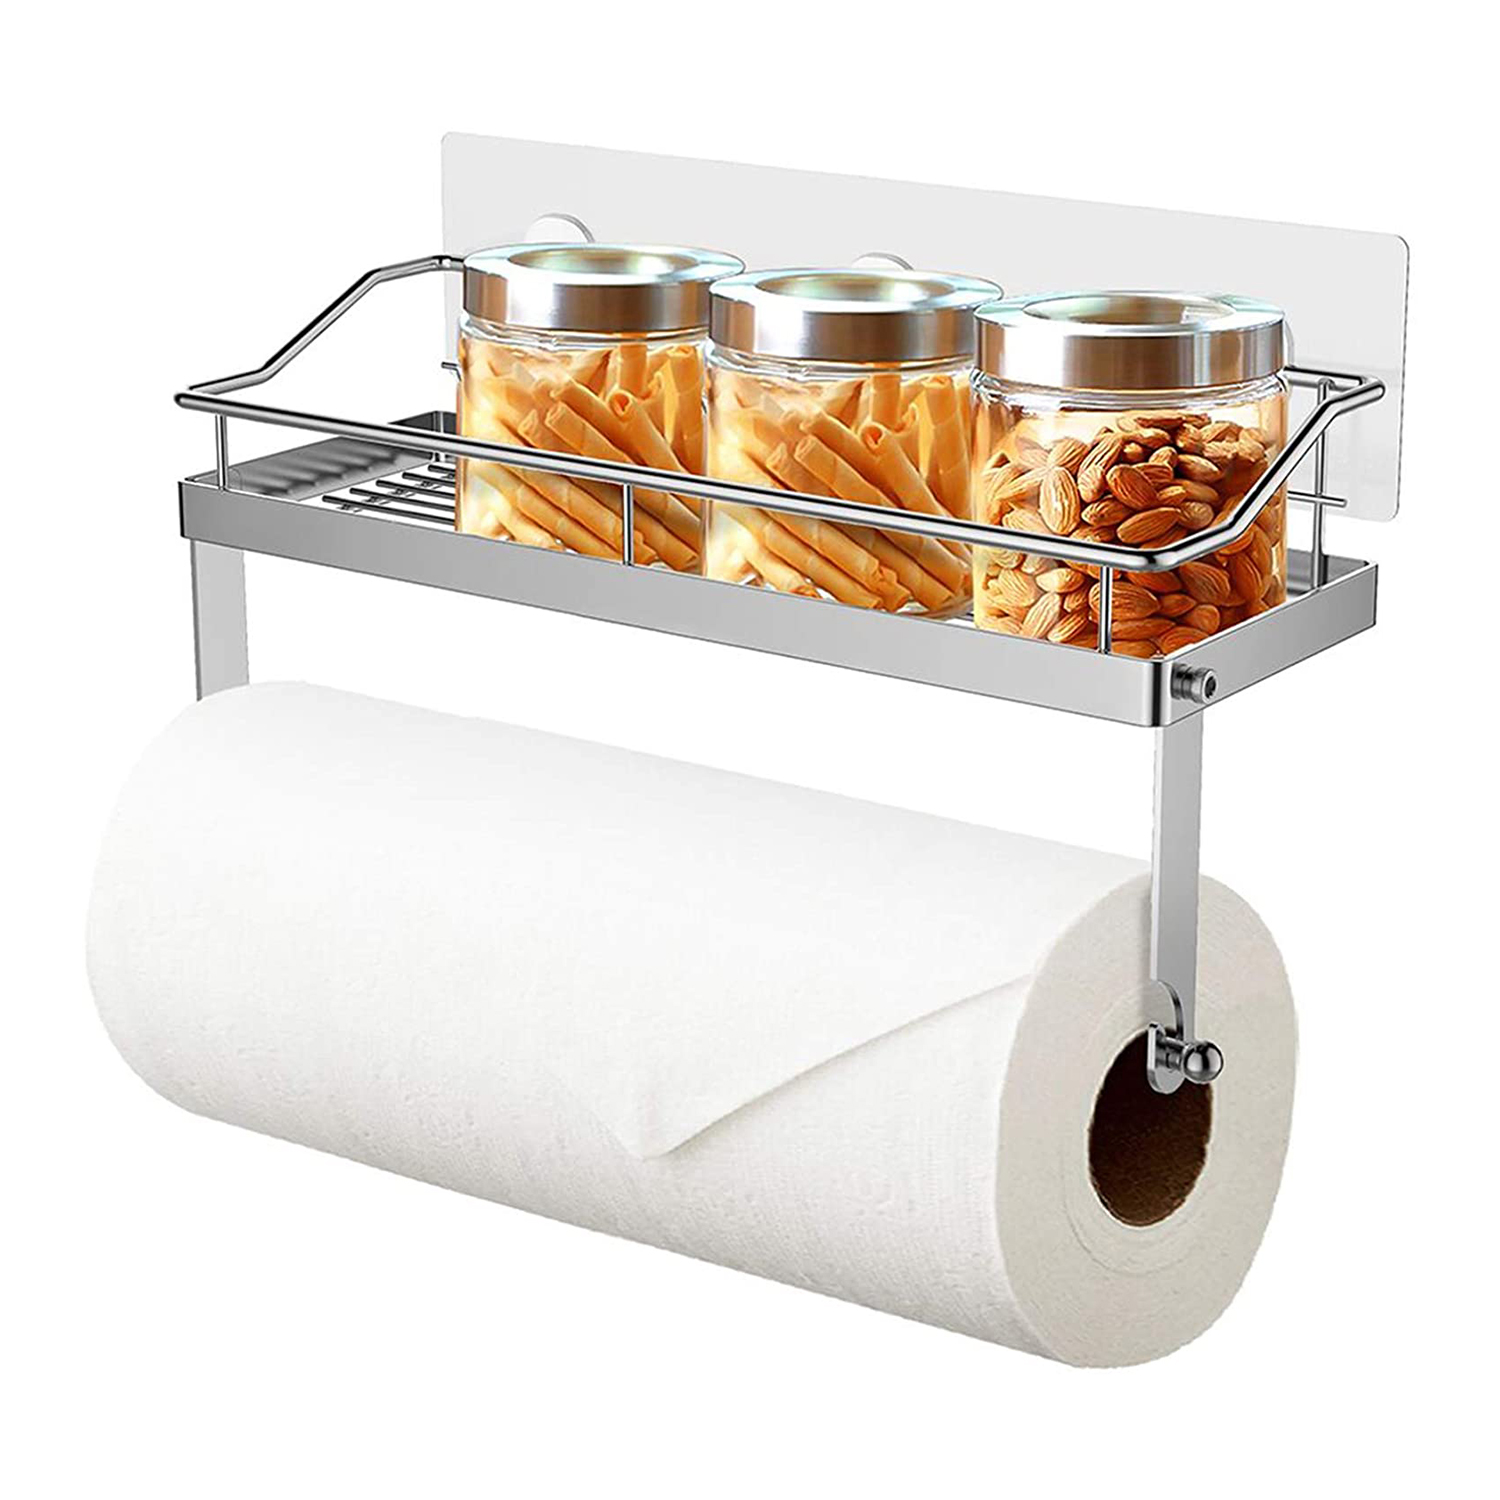 ODesign Paper Towel Holder with Shelf Adhesive Wall Mount 2-in-1 for Kitchen Shower Bathroom Organizer